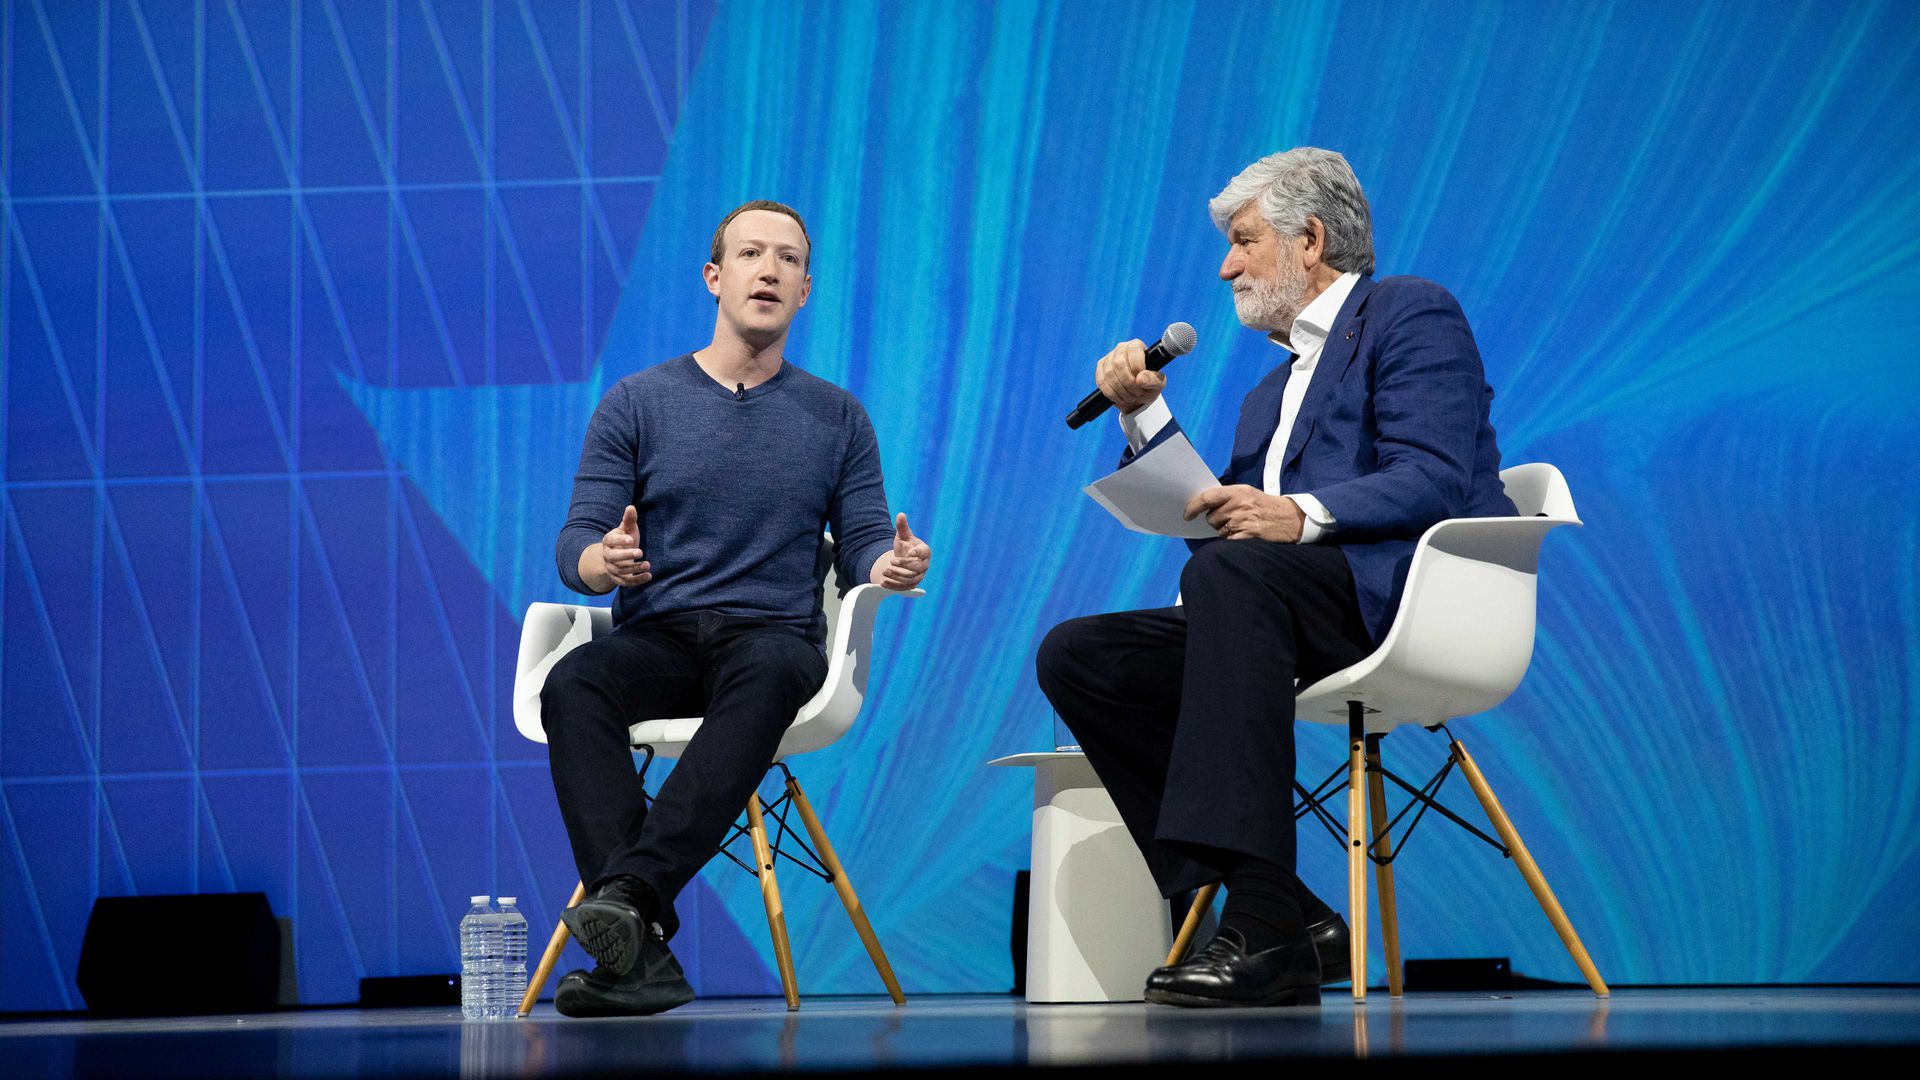 Mark Zuckerberg speaks to another man on stage at a conference